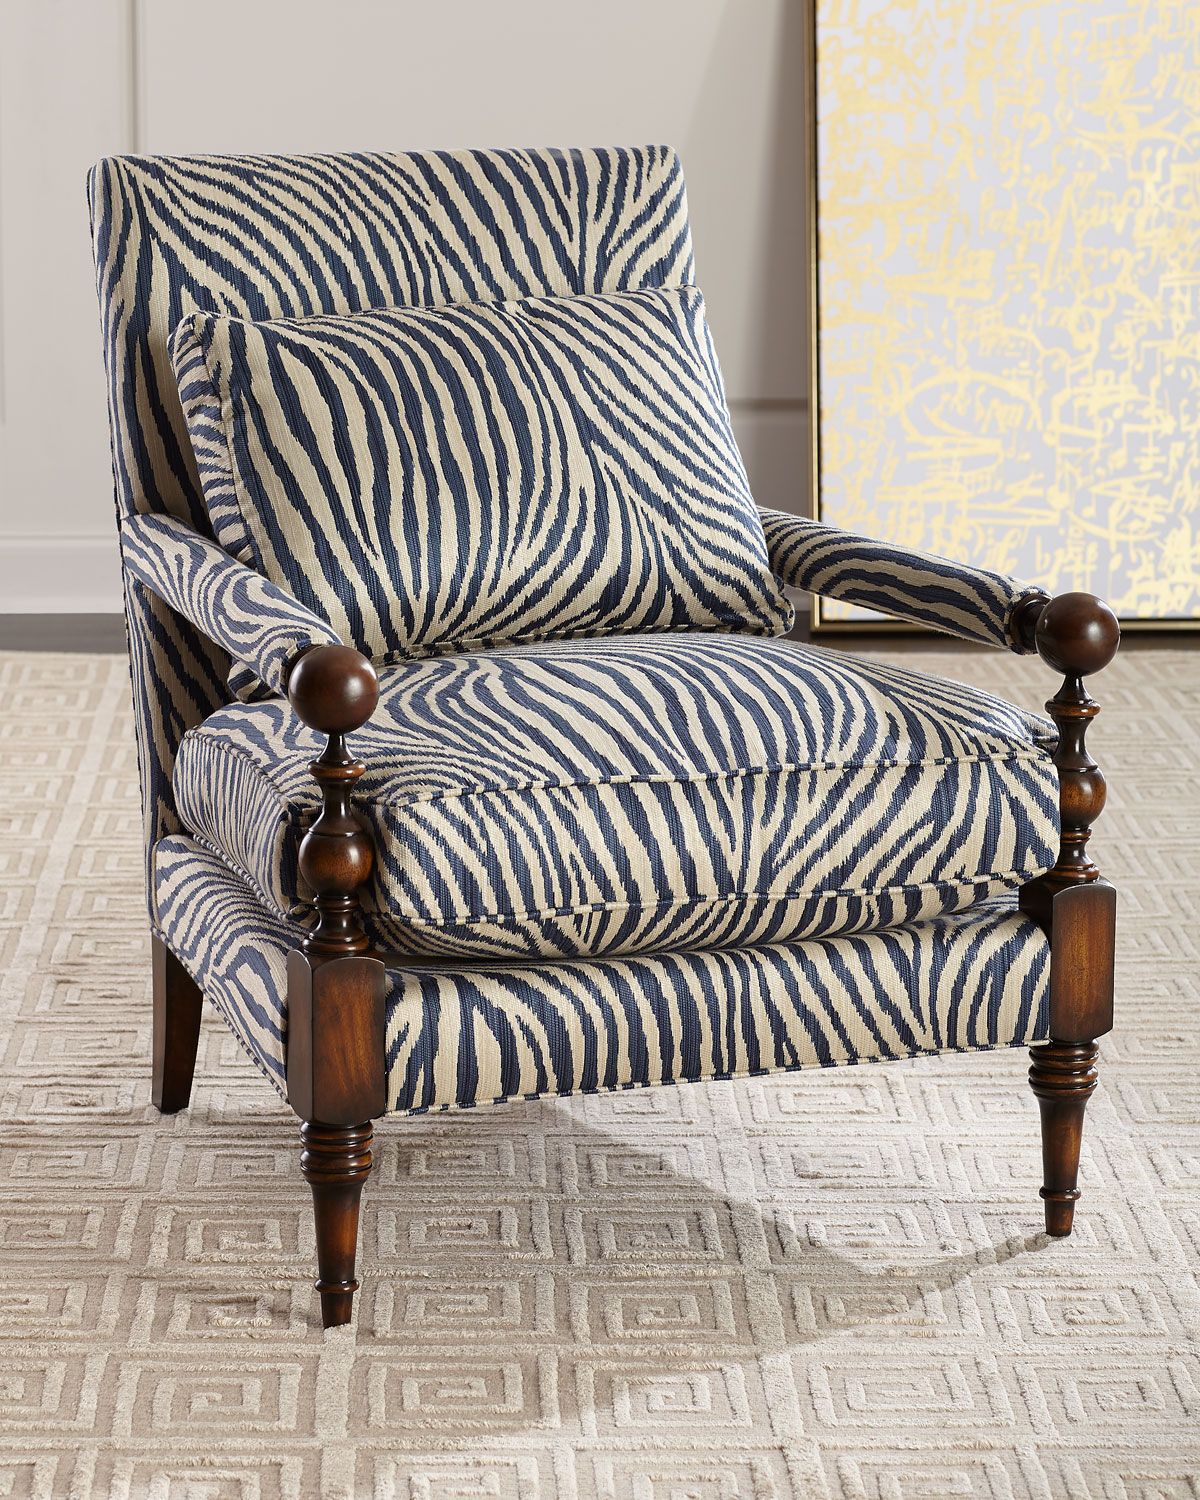 Zebra TransitionalStyle Arm Chair